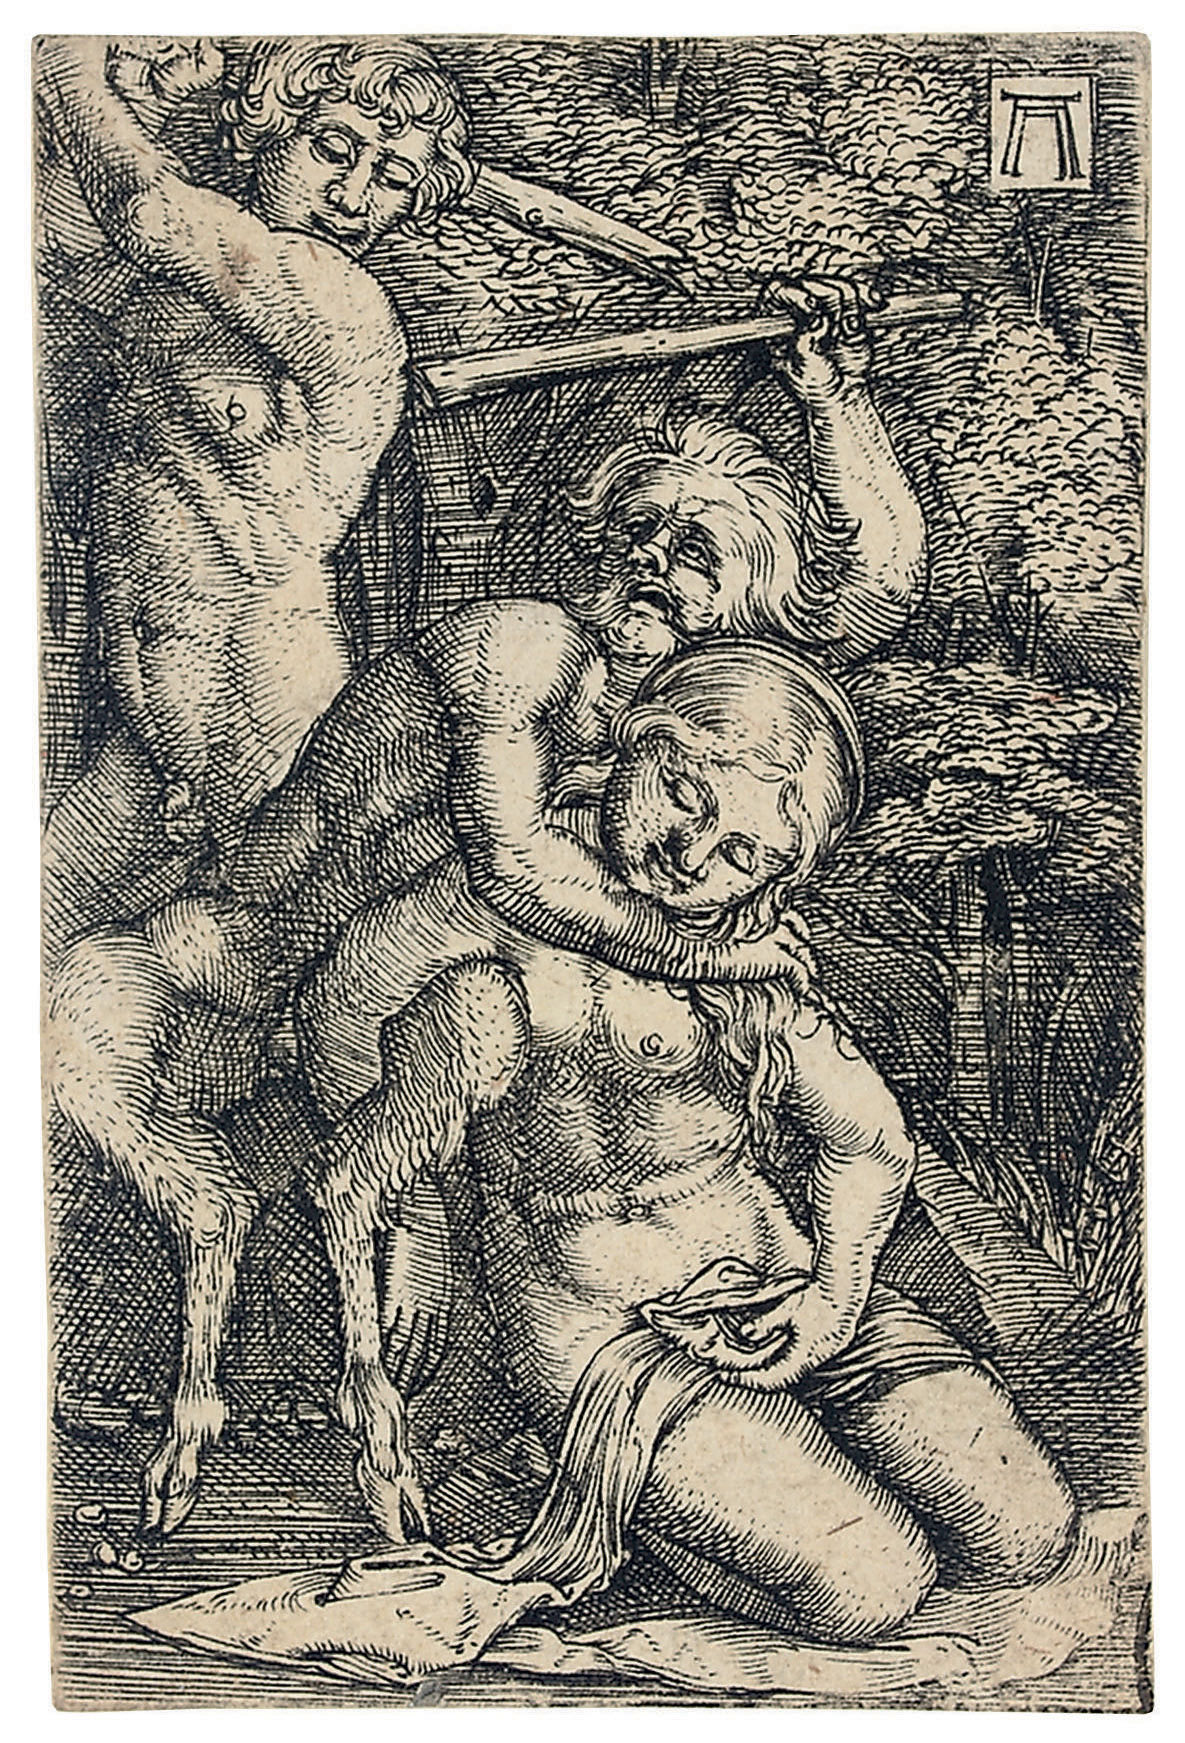 Two Satyrs, fighting about a Nymph (Bartsch 38; Winzinger 164)